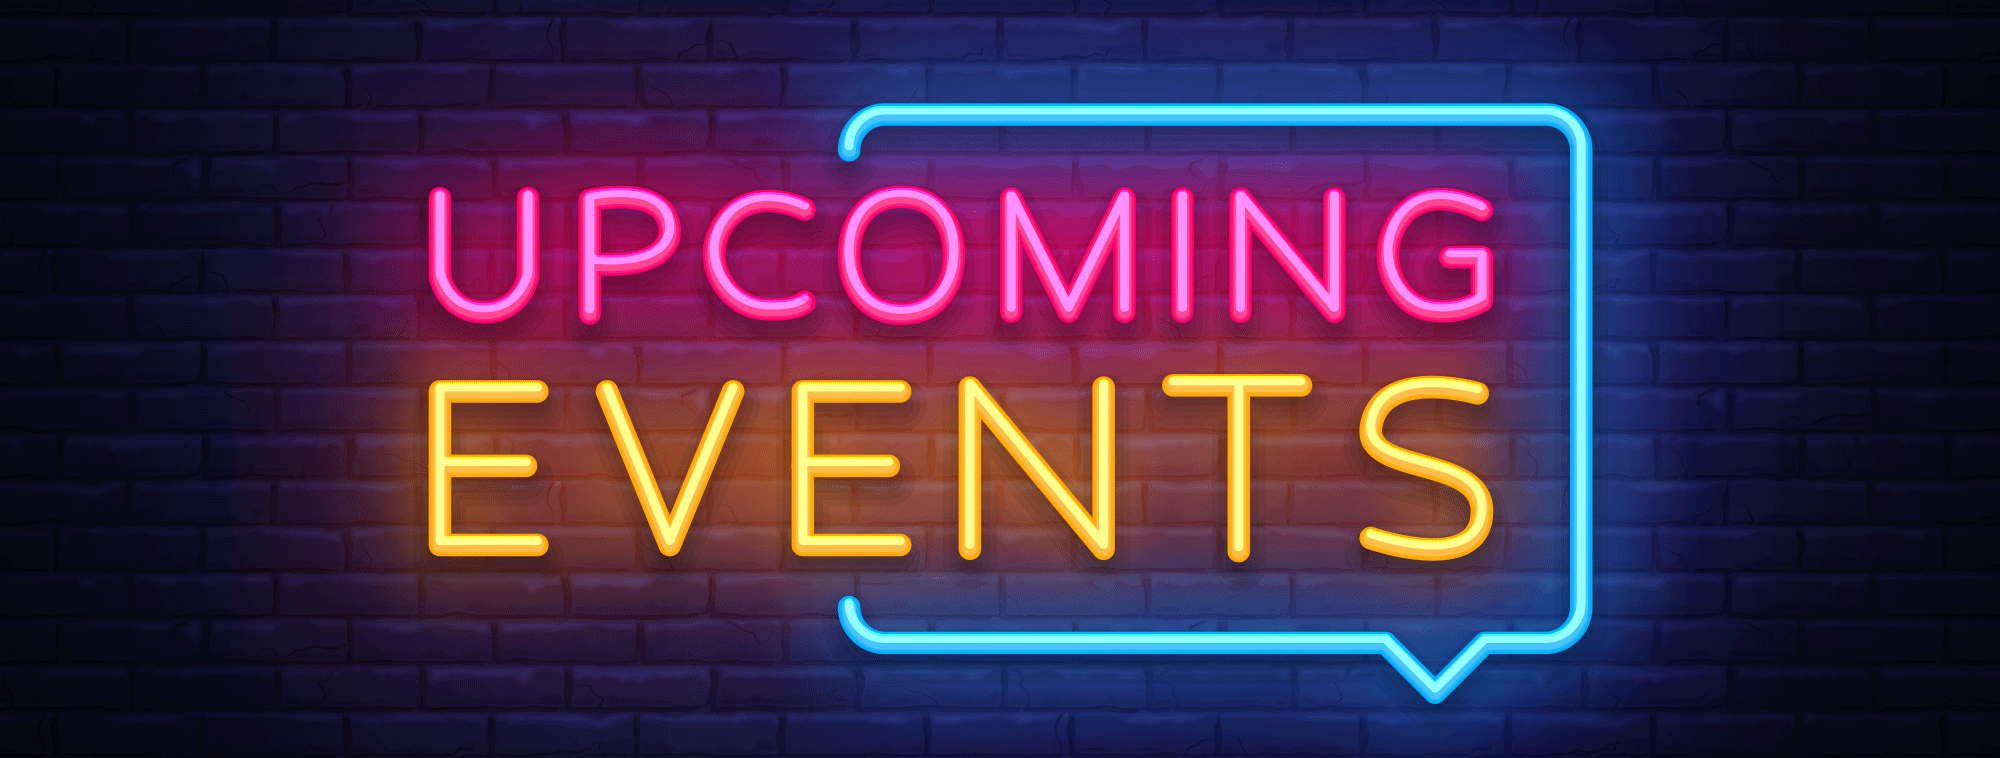 Upcoming-Events-in-neon